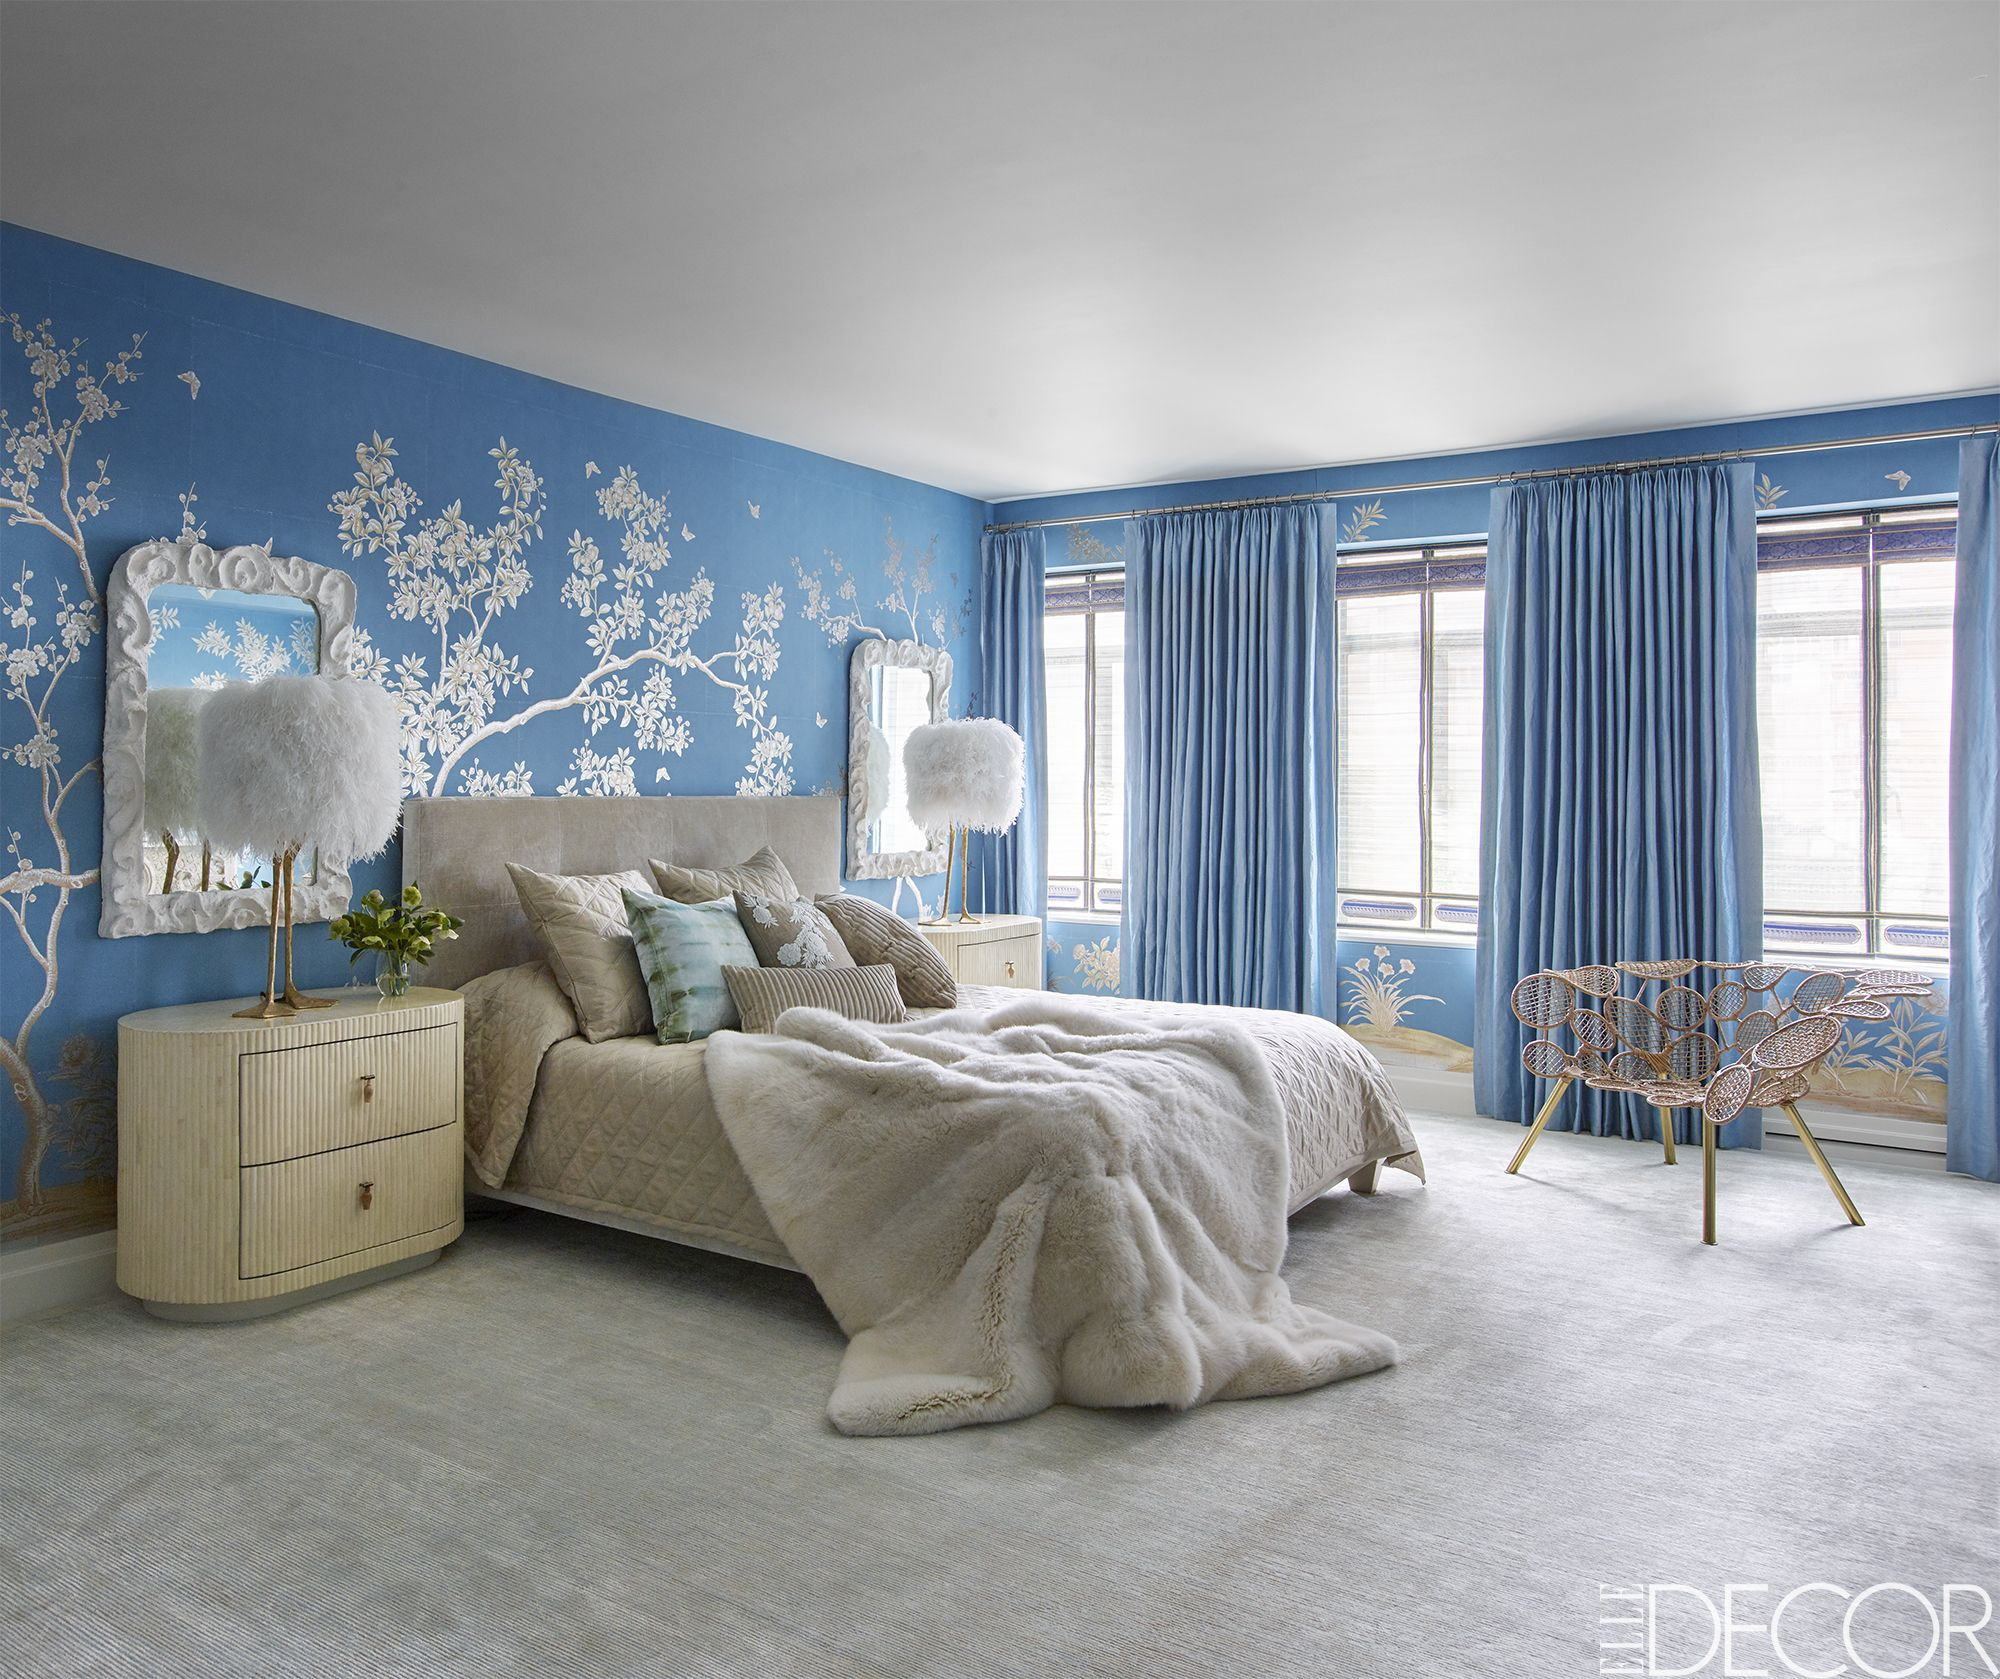 Bedroom ideas blue, arresting ikea bedroom ideas blue how to ...